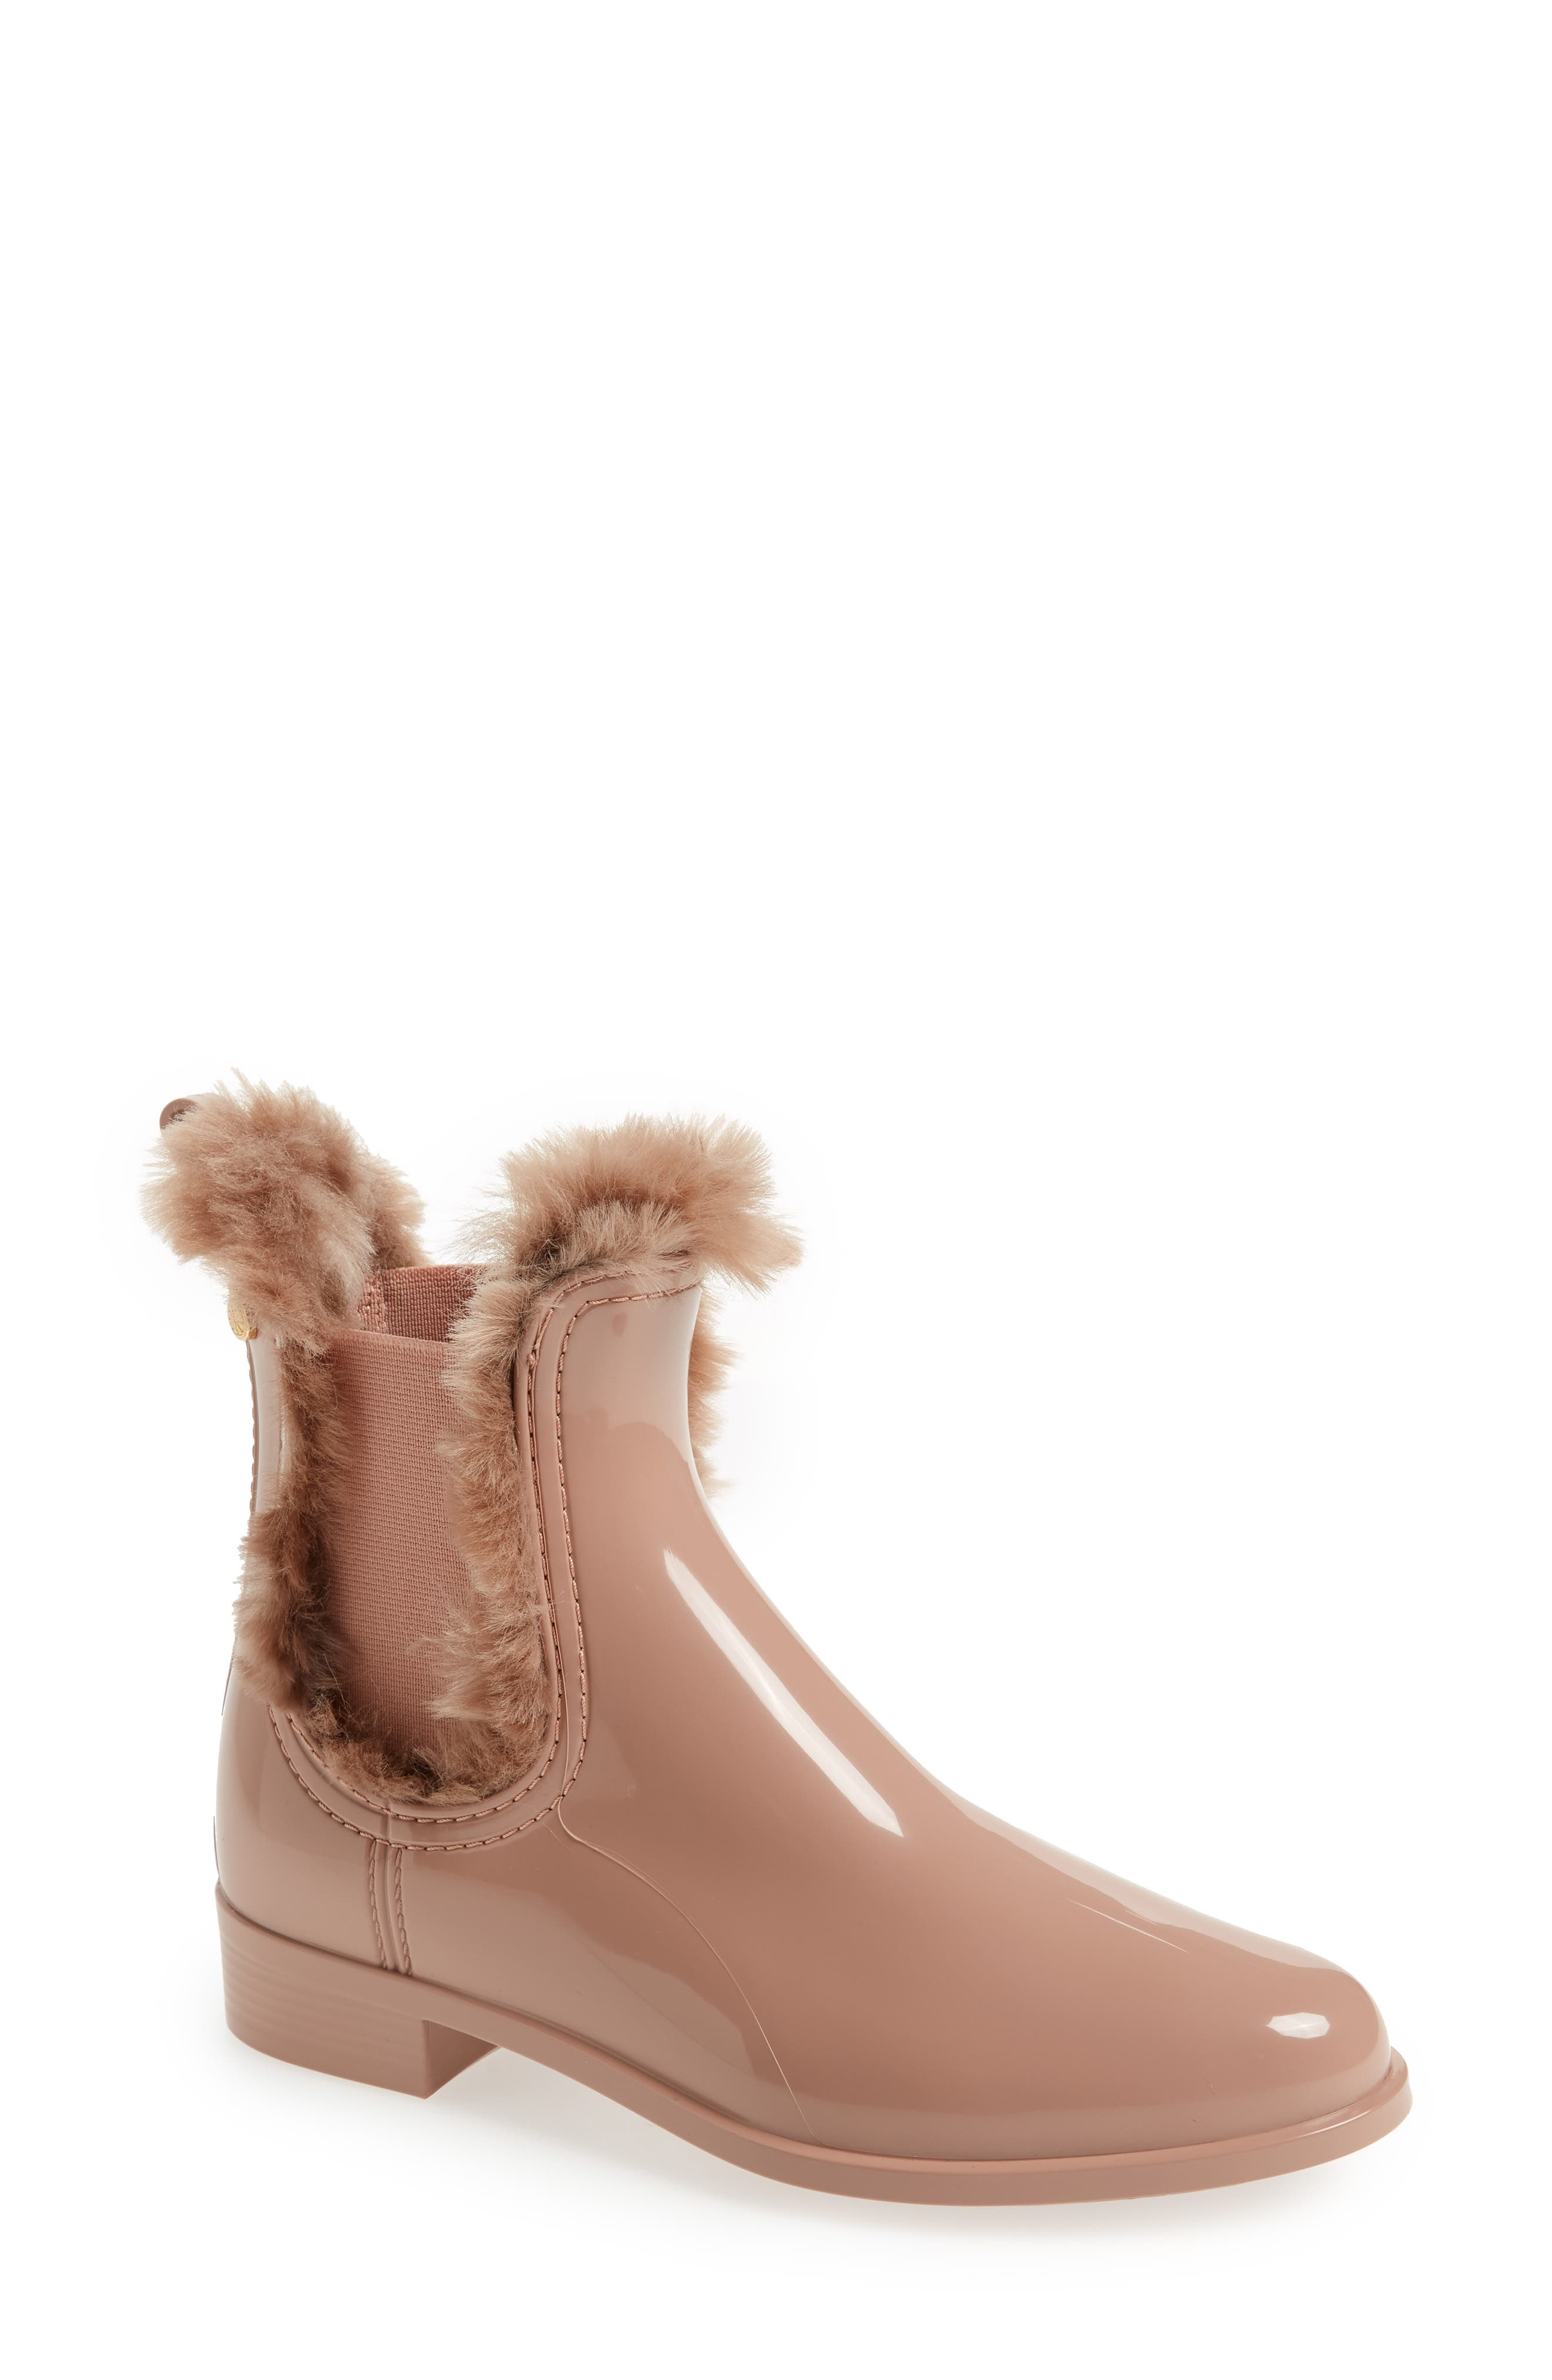 Aisha Waterproof Chelsea Boot with Faux Fur Lining,                         Main,                         color, ROSE MATTE